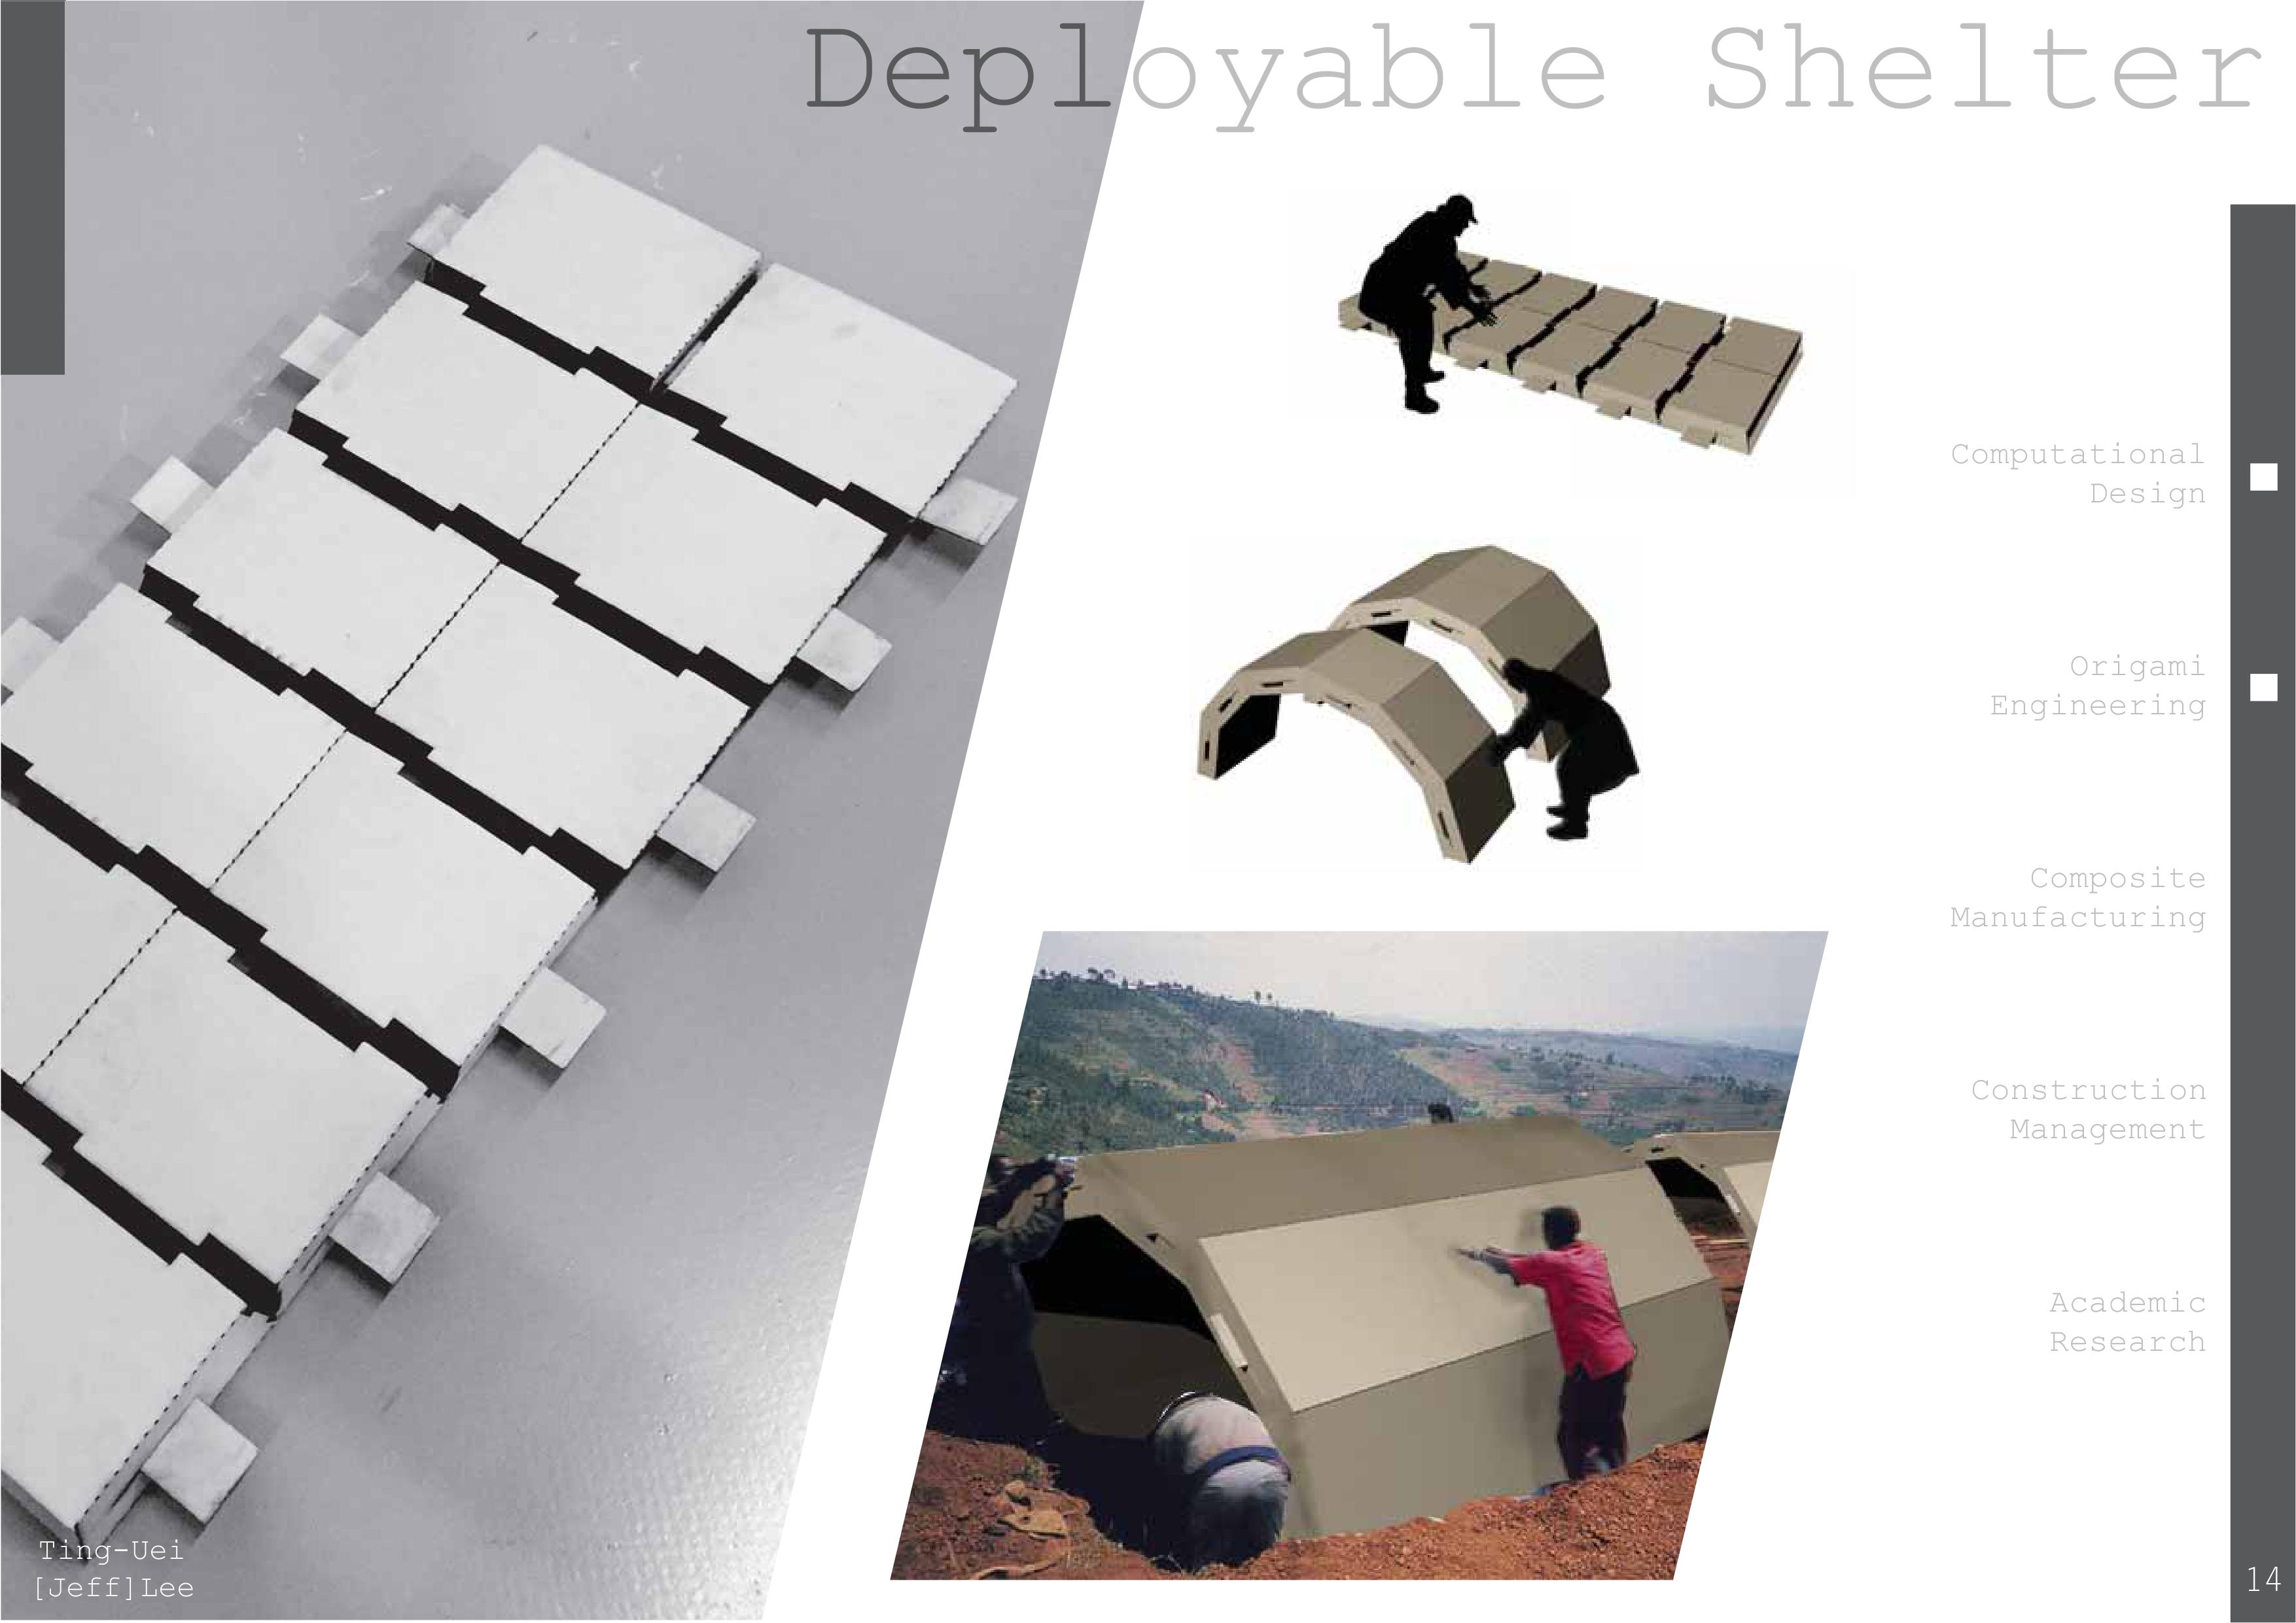 Deployable Shelter